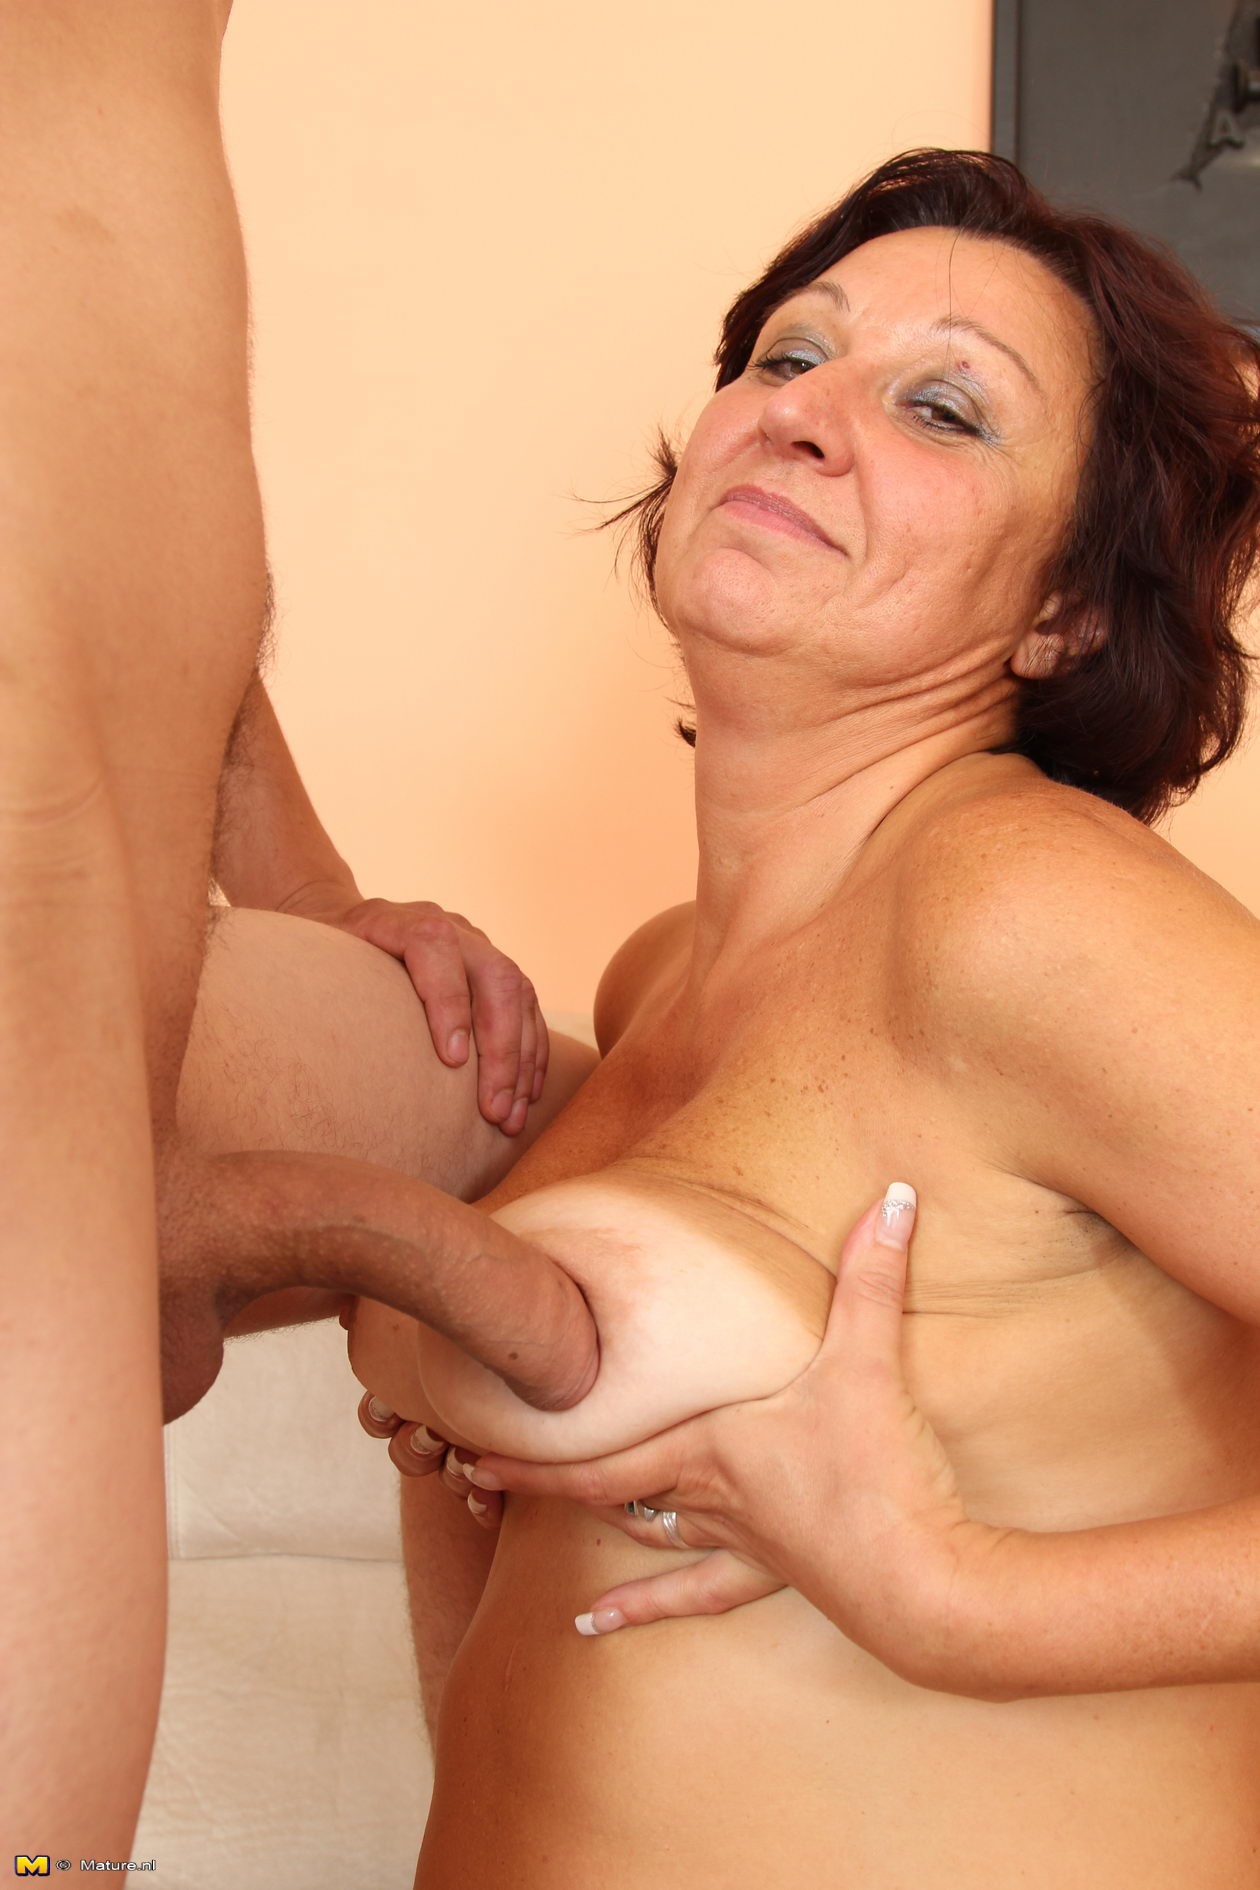 mom boy mature free pics